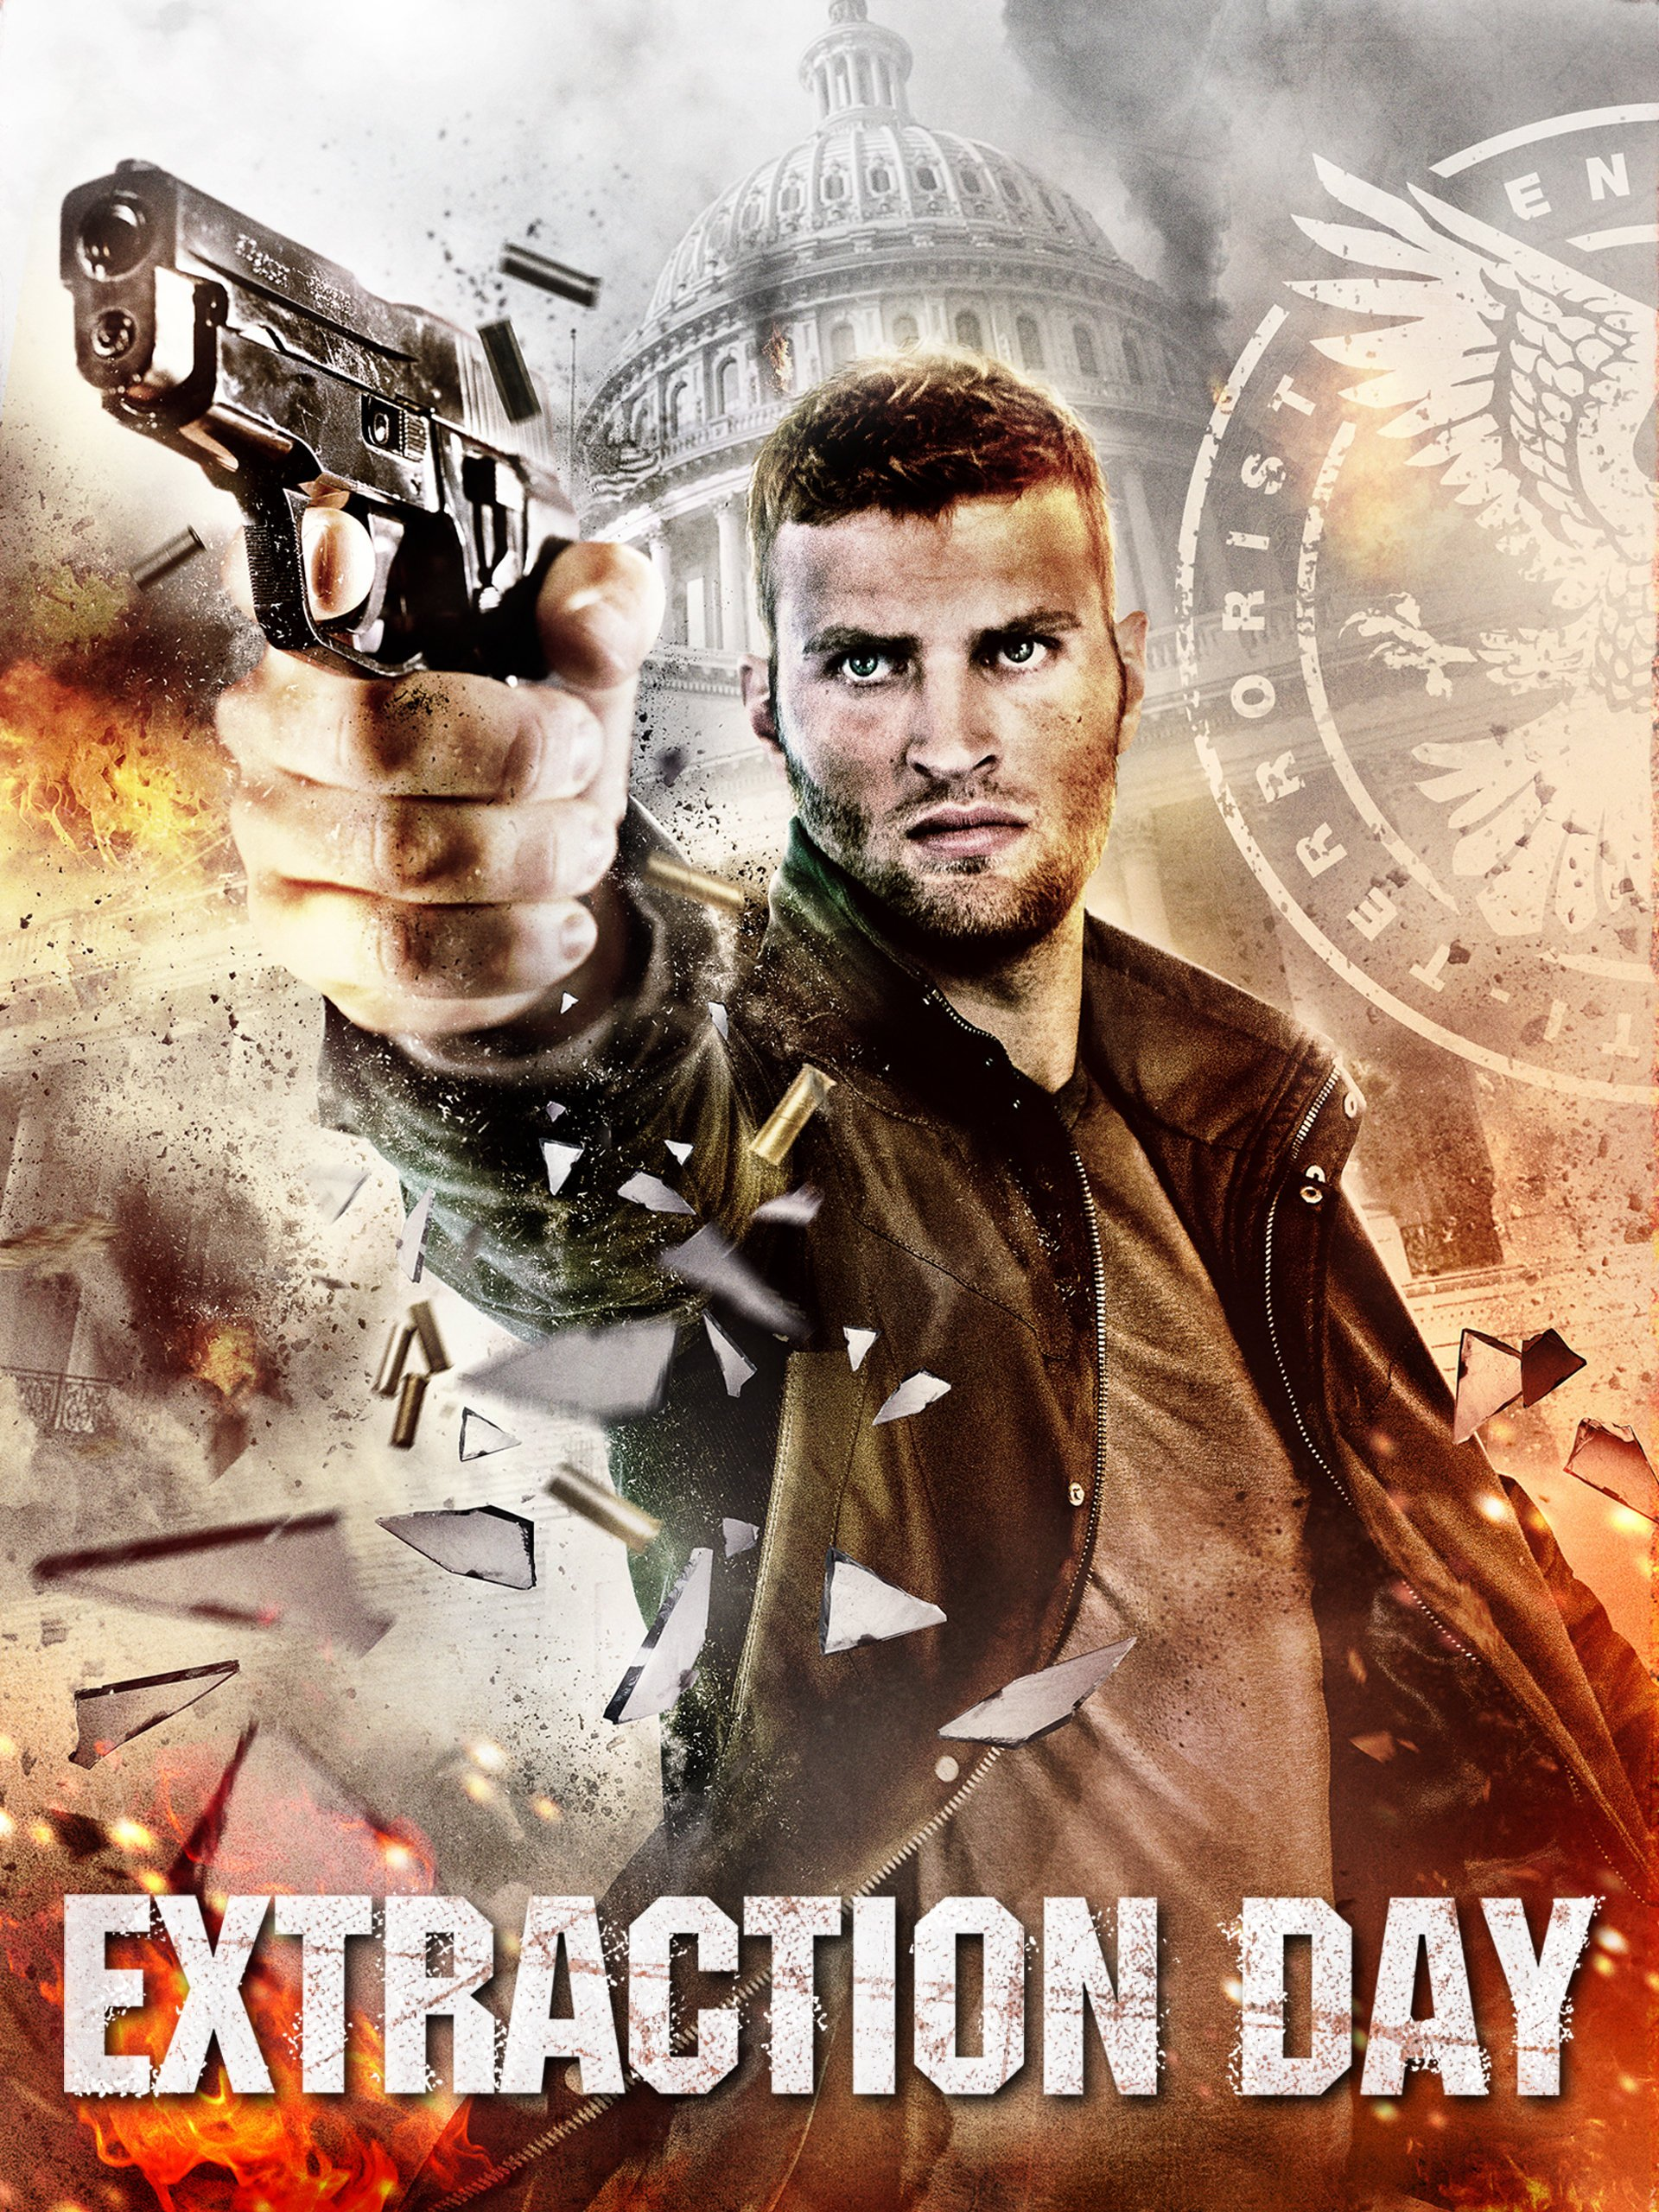 Watch Extraction Day Prime Video